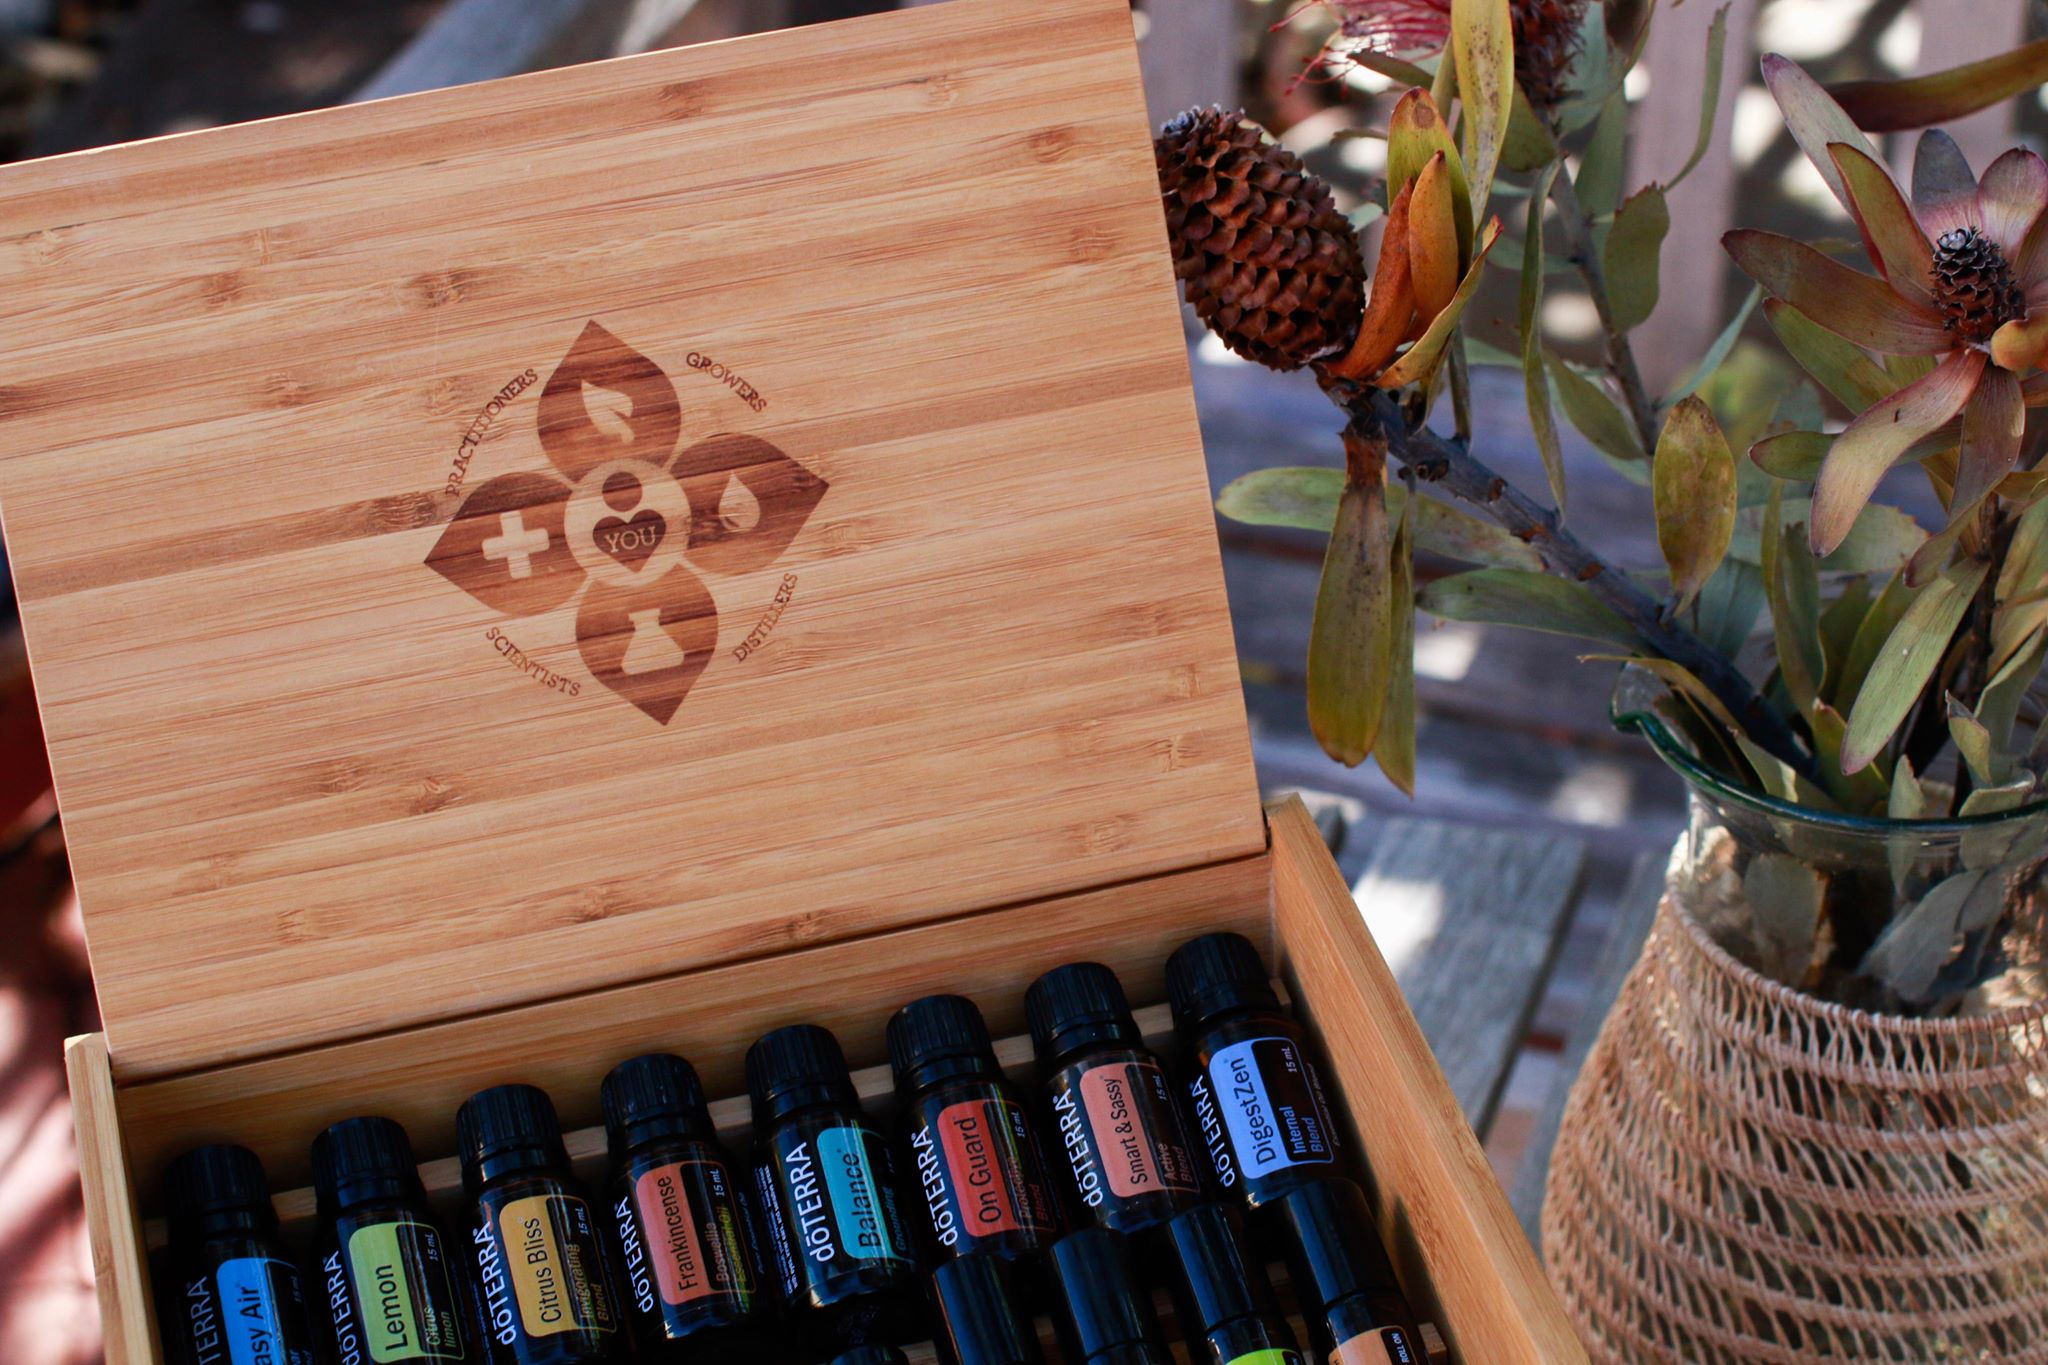 Curious About Oils? - Learn about the plant magic of Essential Oils with Balanced by Aquila on Facebook.